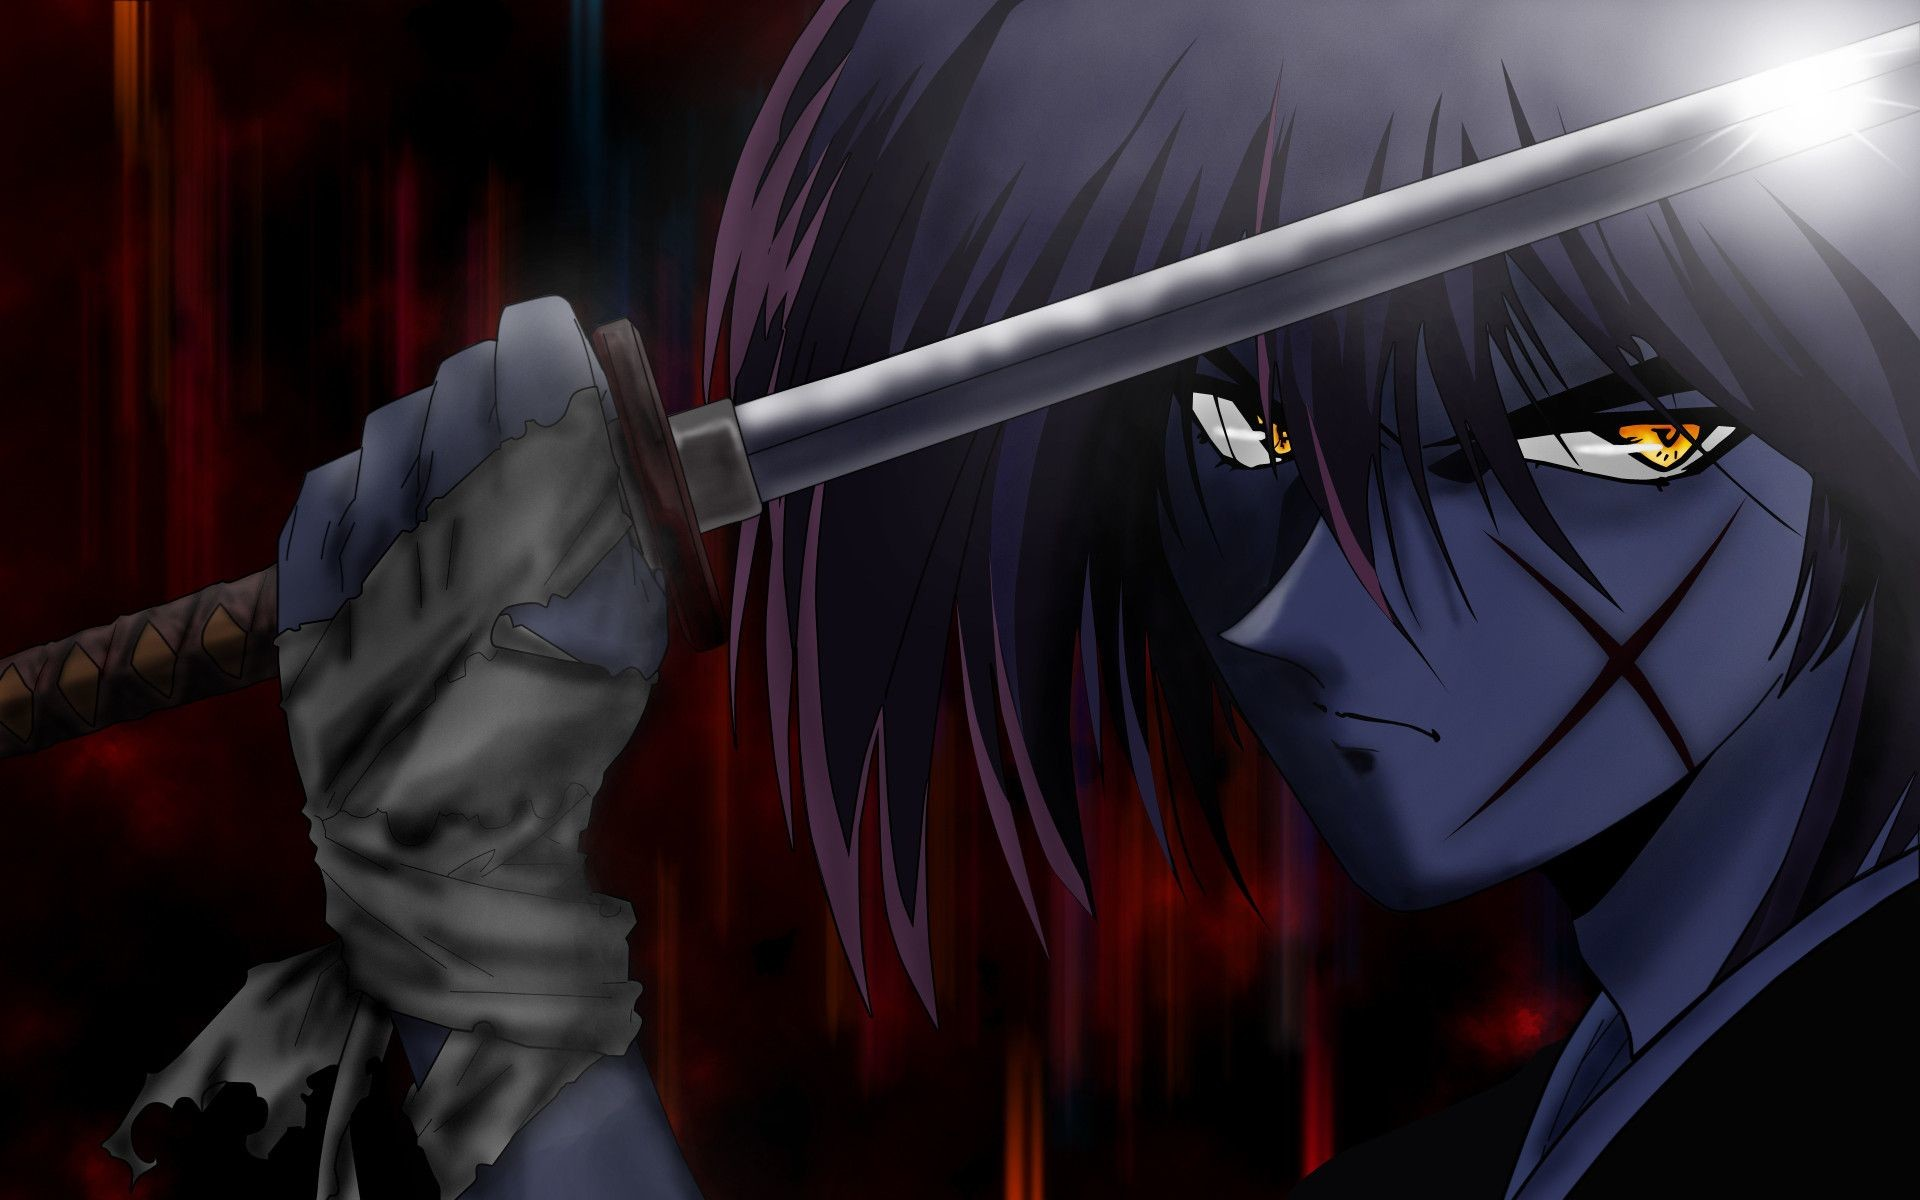 Samurai x wallpaper hd 53 images 1920x1200 anime samurai x wallpaper movies 12255 wallpaper high resolution voltagebd Images